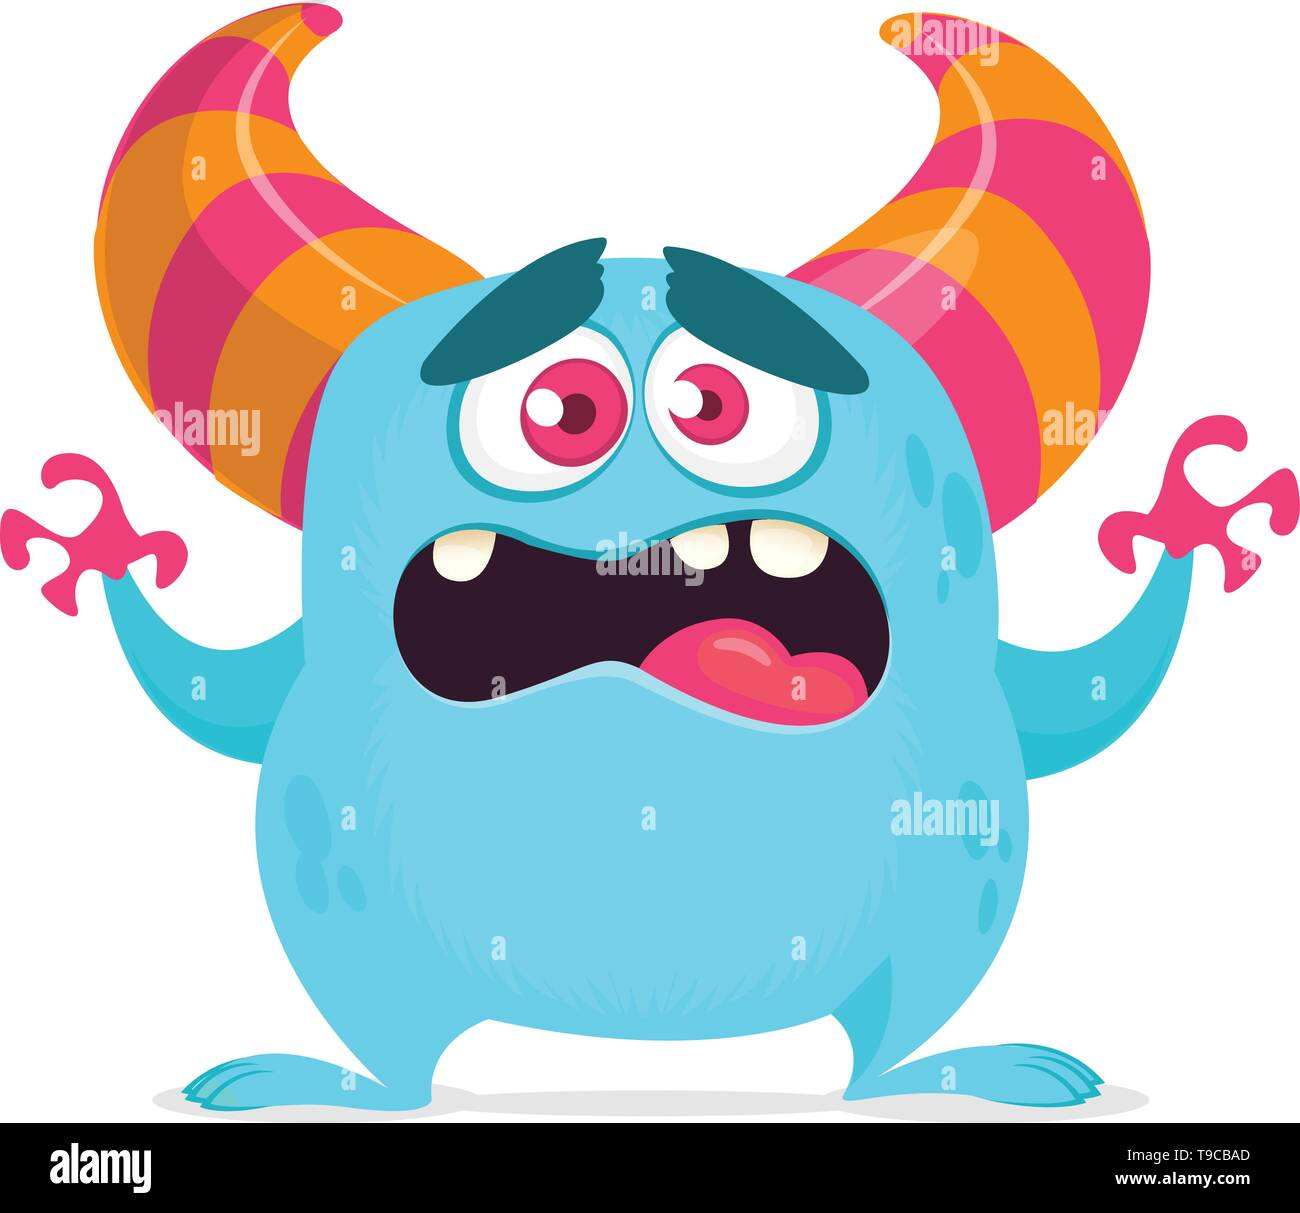 Cute cartoon monster. Vector illustration of yeti or bigfoot. Scared emotion monster face - Stock Image